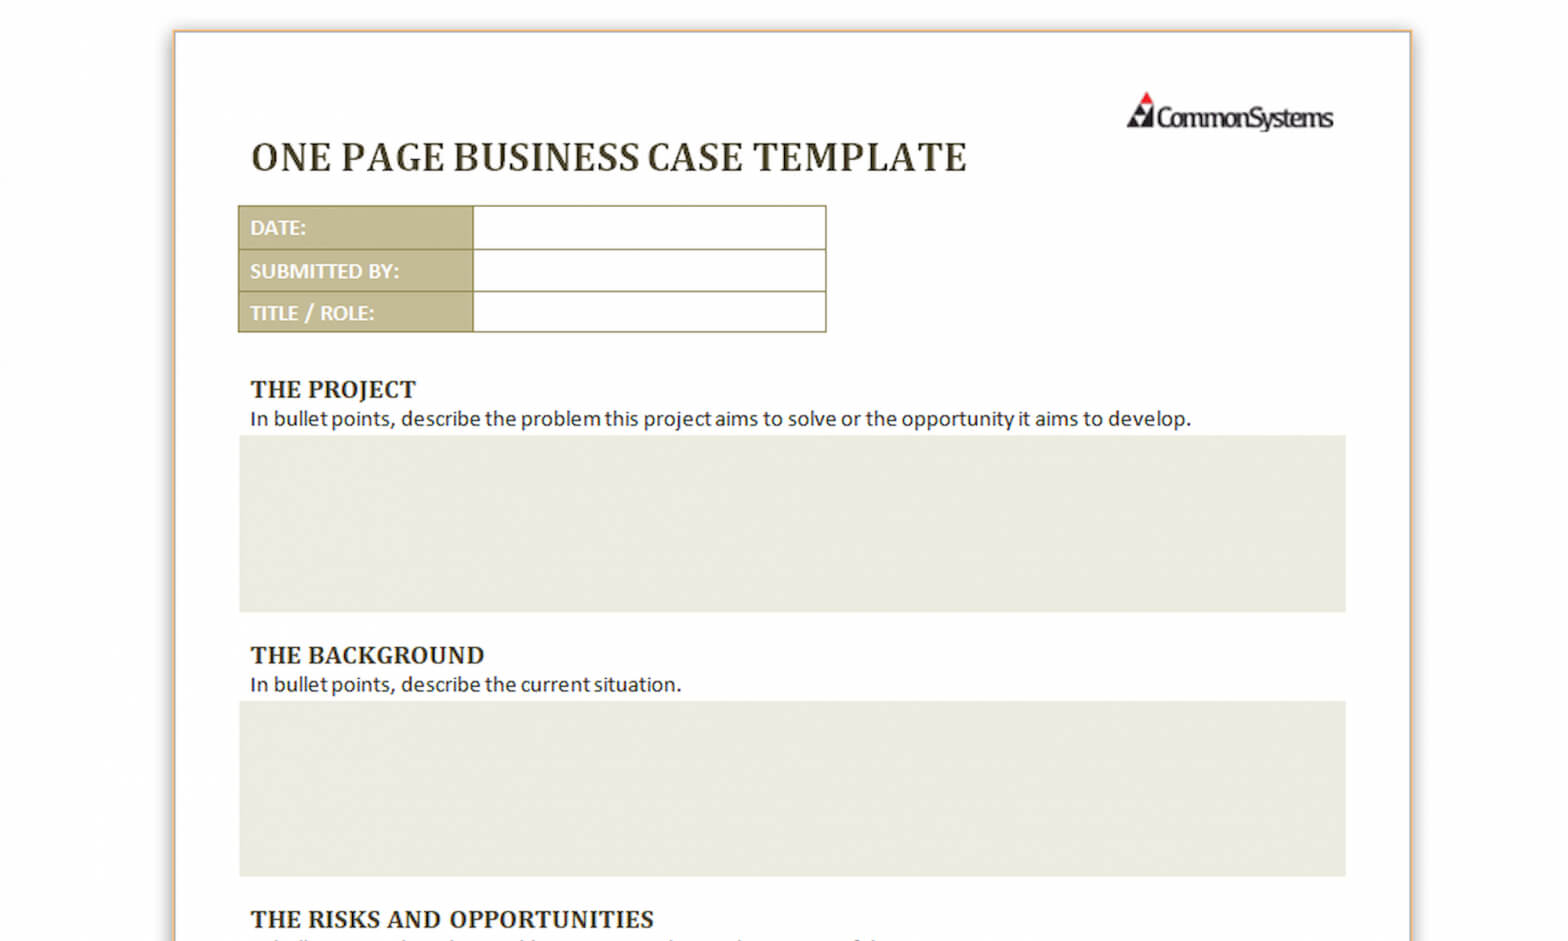 Free Download - One Page Business Case Template | Common Systems Within Business Case One Page Template